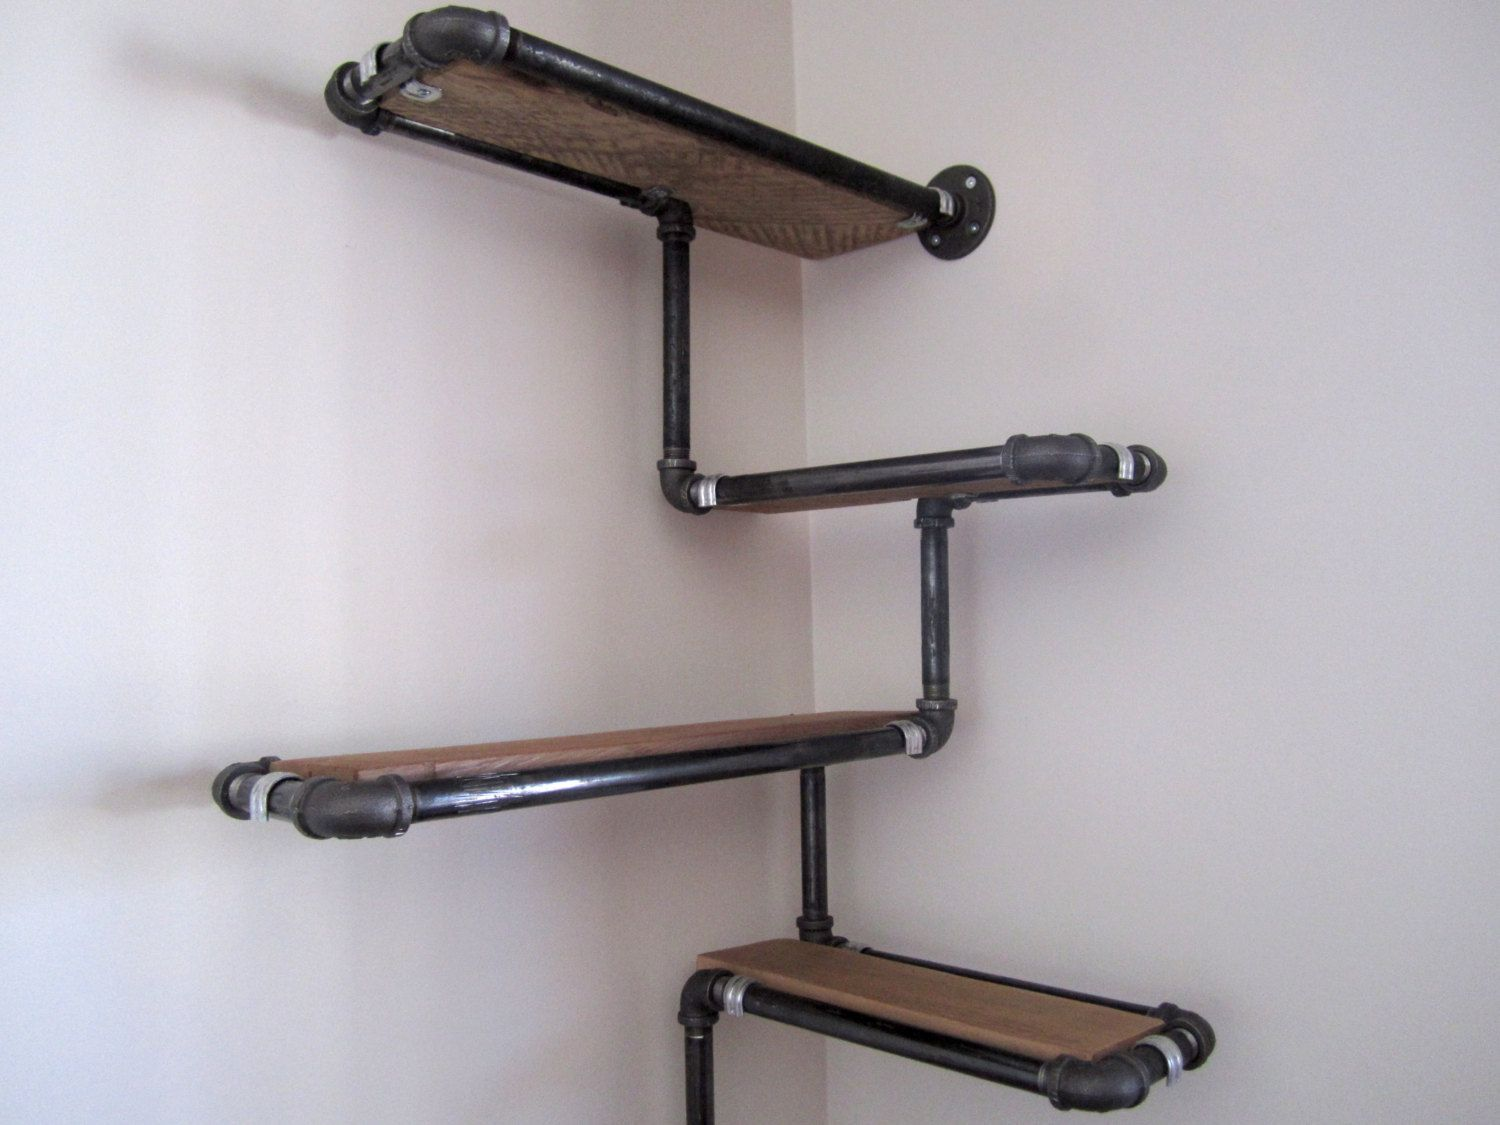 Pin On Shelving From Pipe